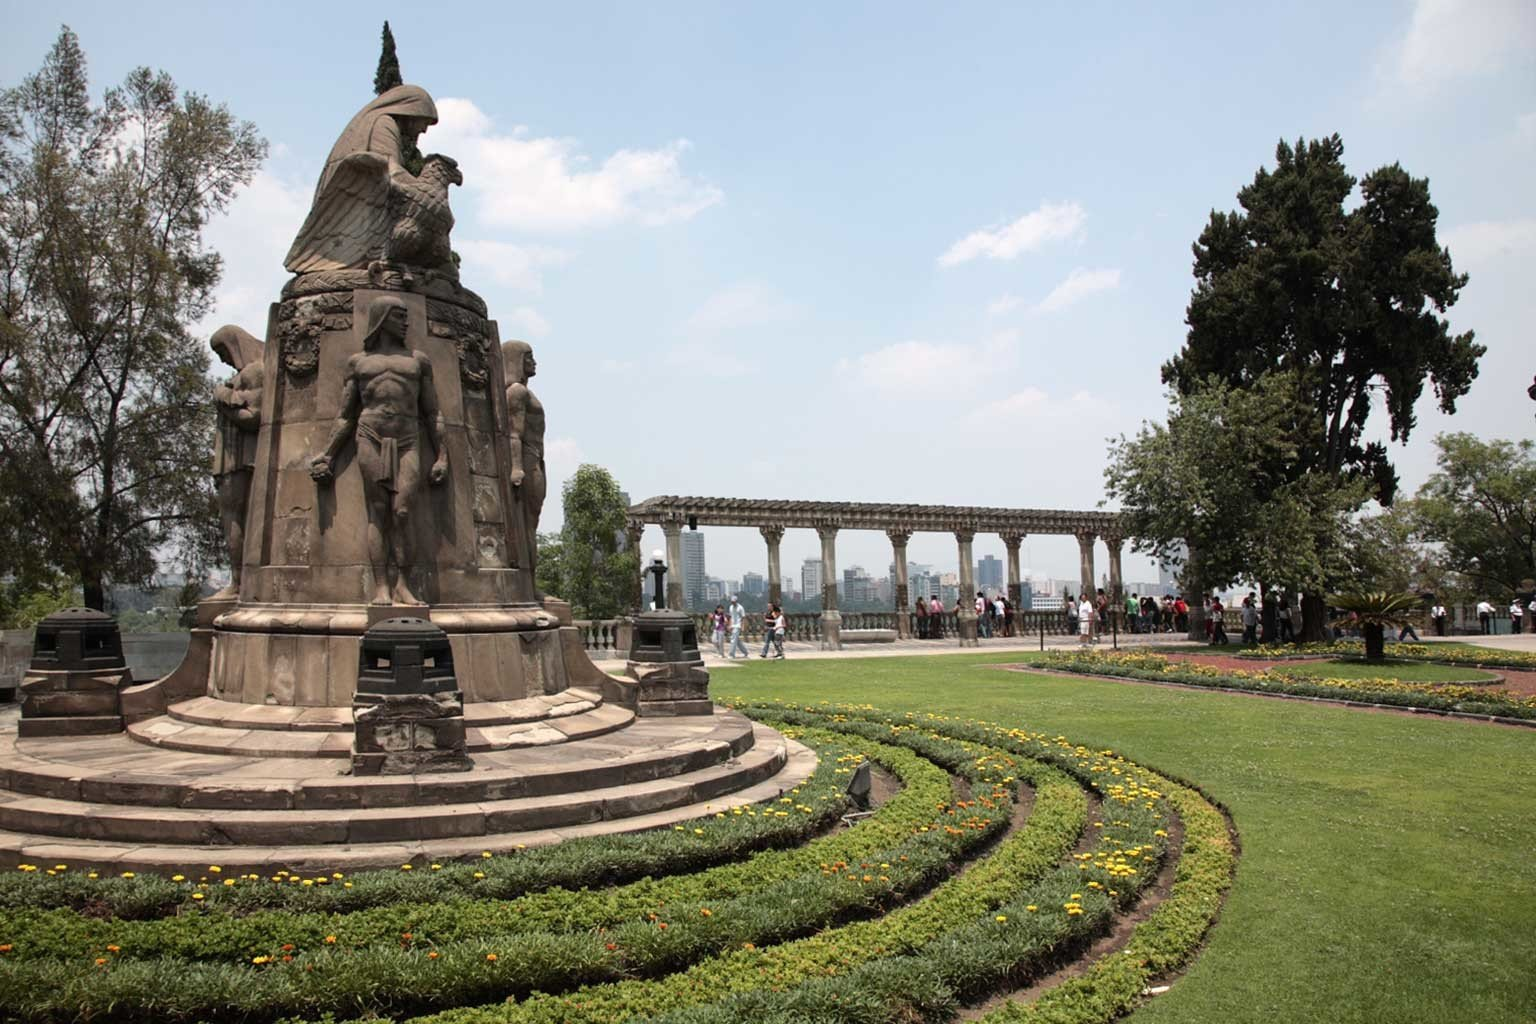 Landmarks Monuments Nature Outdoor Activities Outdoors sky grass tree building landmark monument Garden town square memorial ancient history palace plaza old place of worship stone colonnade